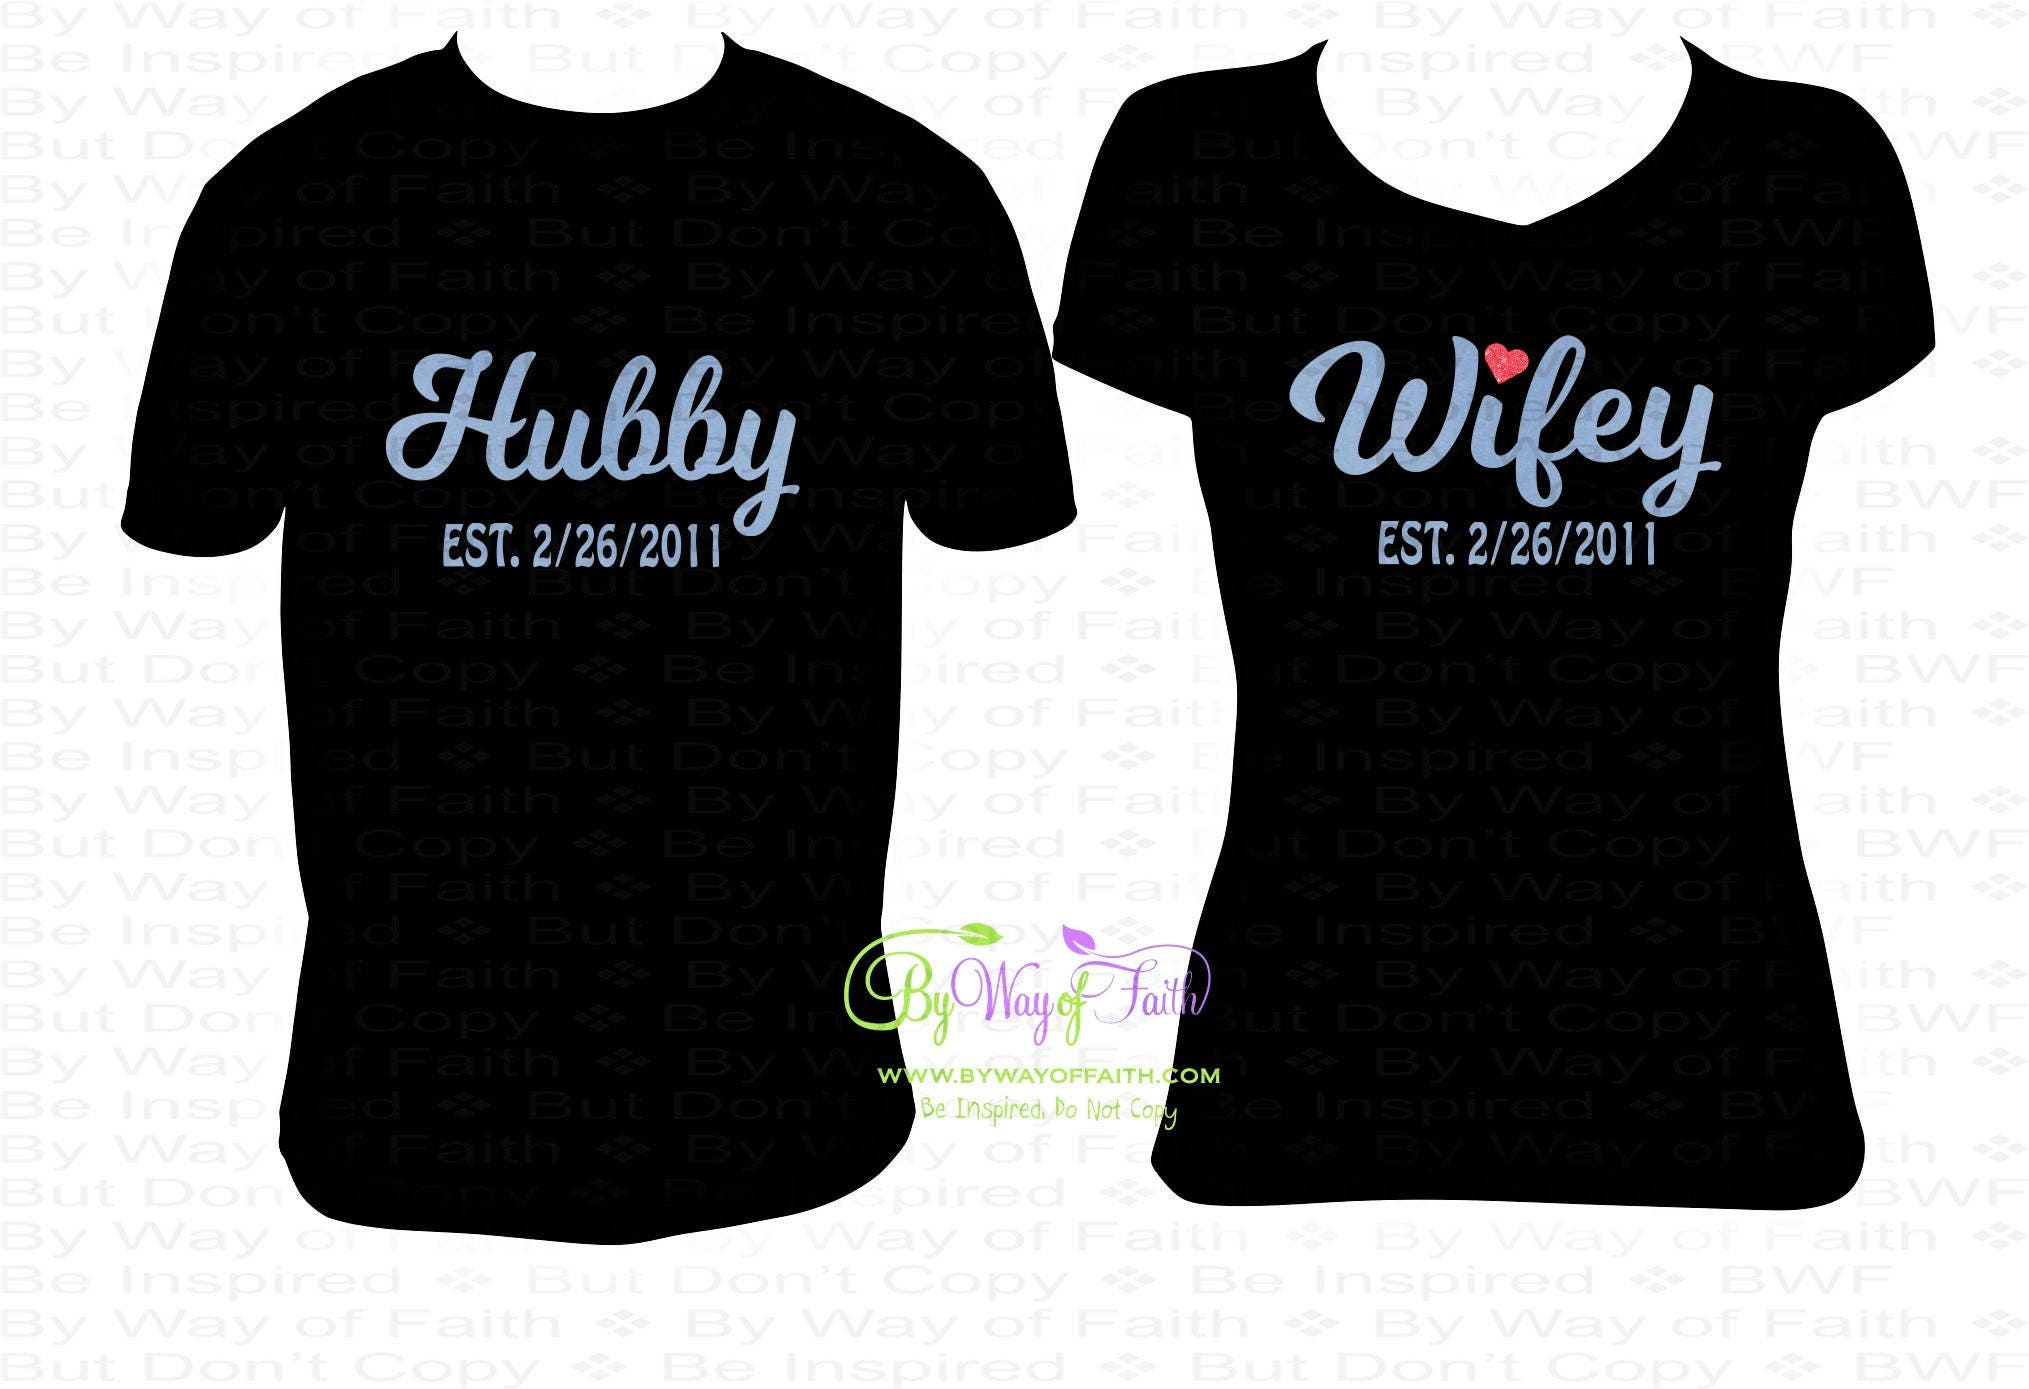 333bb0ea0b01 HUBBY and WIFEY Shirts with EST Wedding Date Valentine Gifts | Etsy